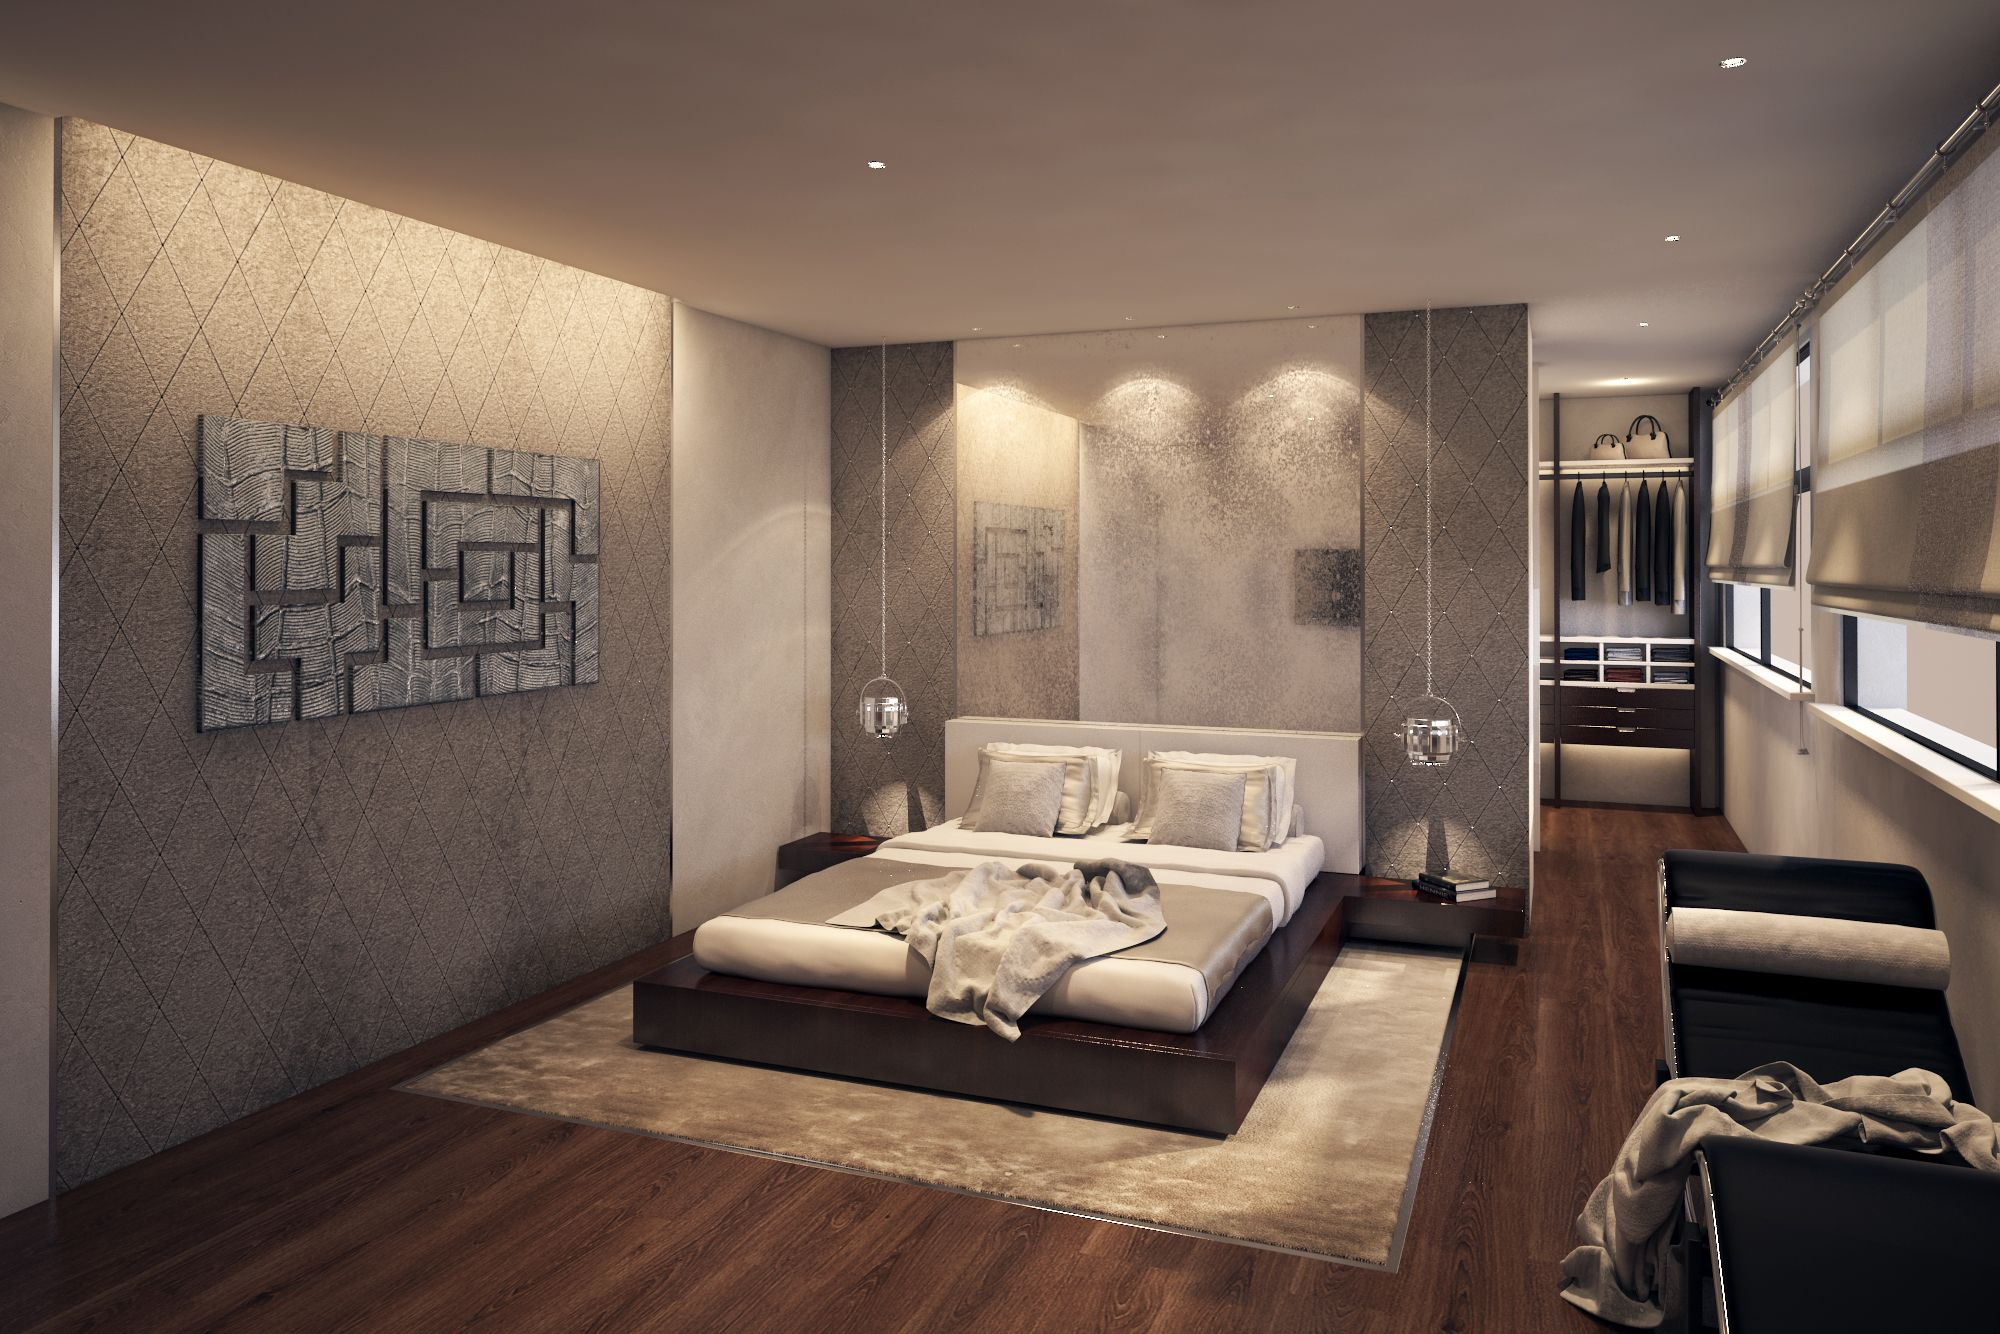 Bachelor Bedrooms Ideas 1 61 London Luxury Bachelor Bedroom Design With Walk In